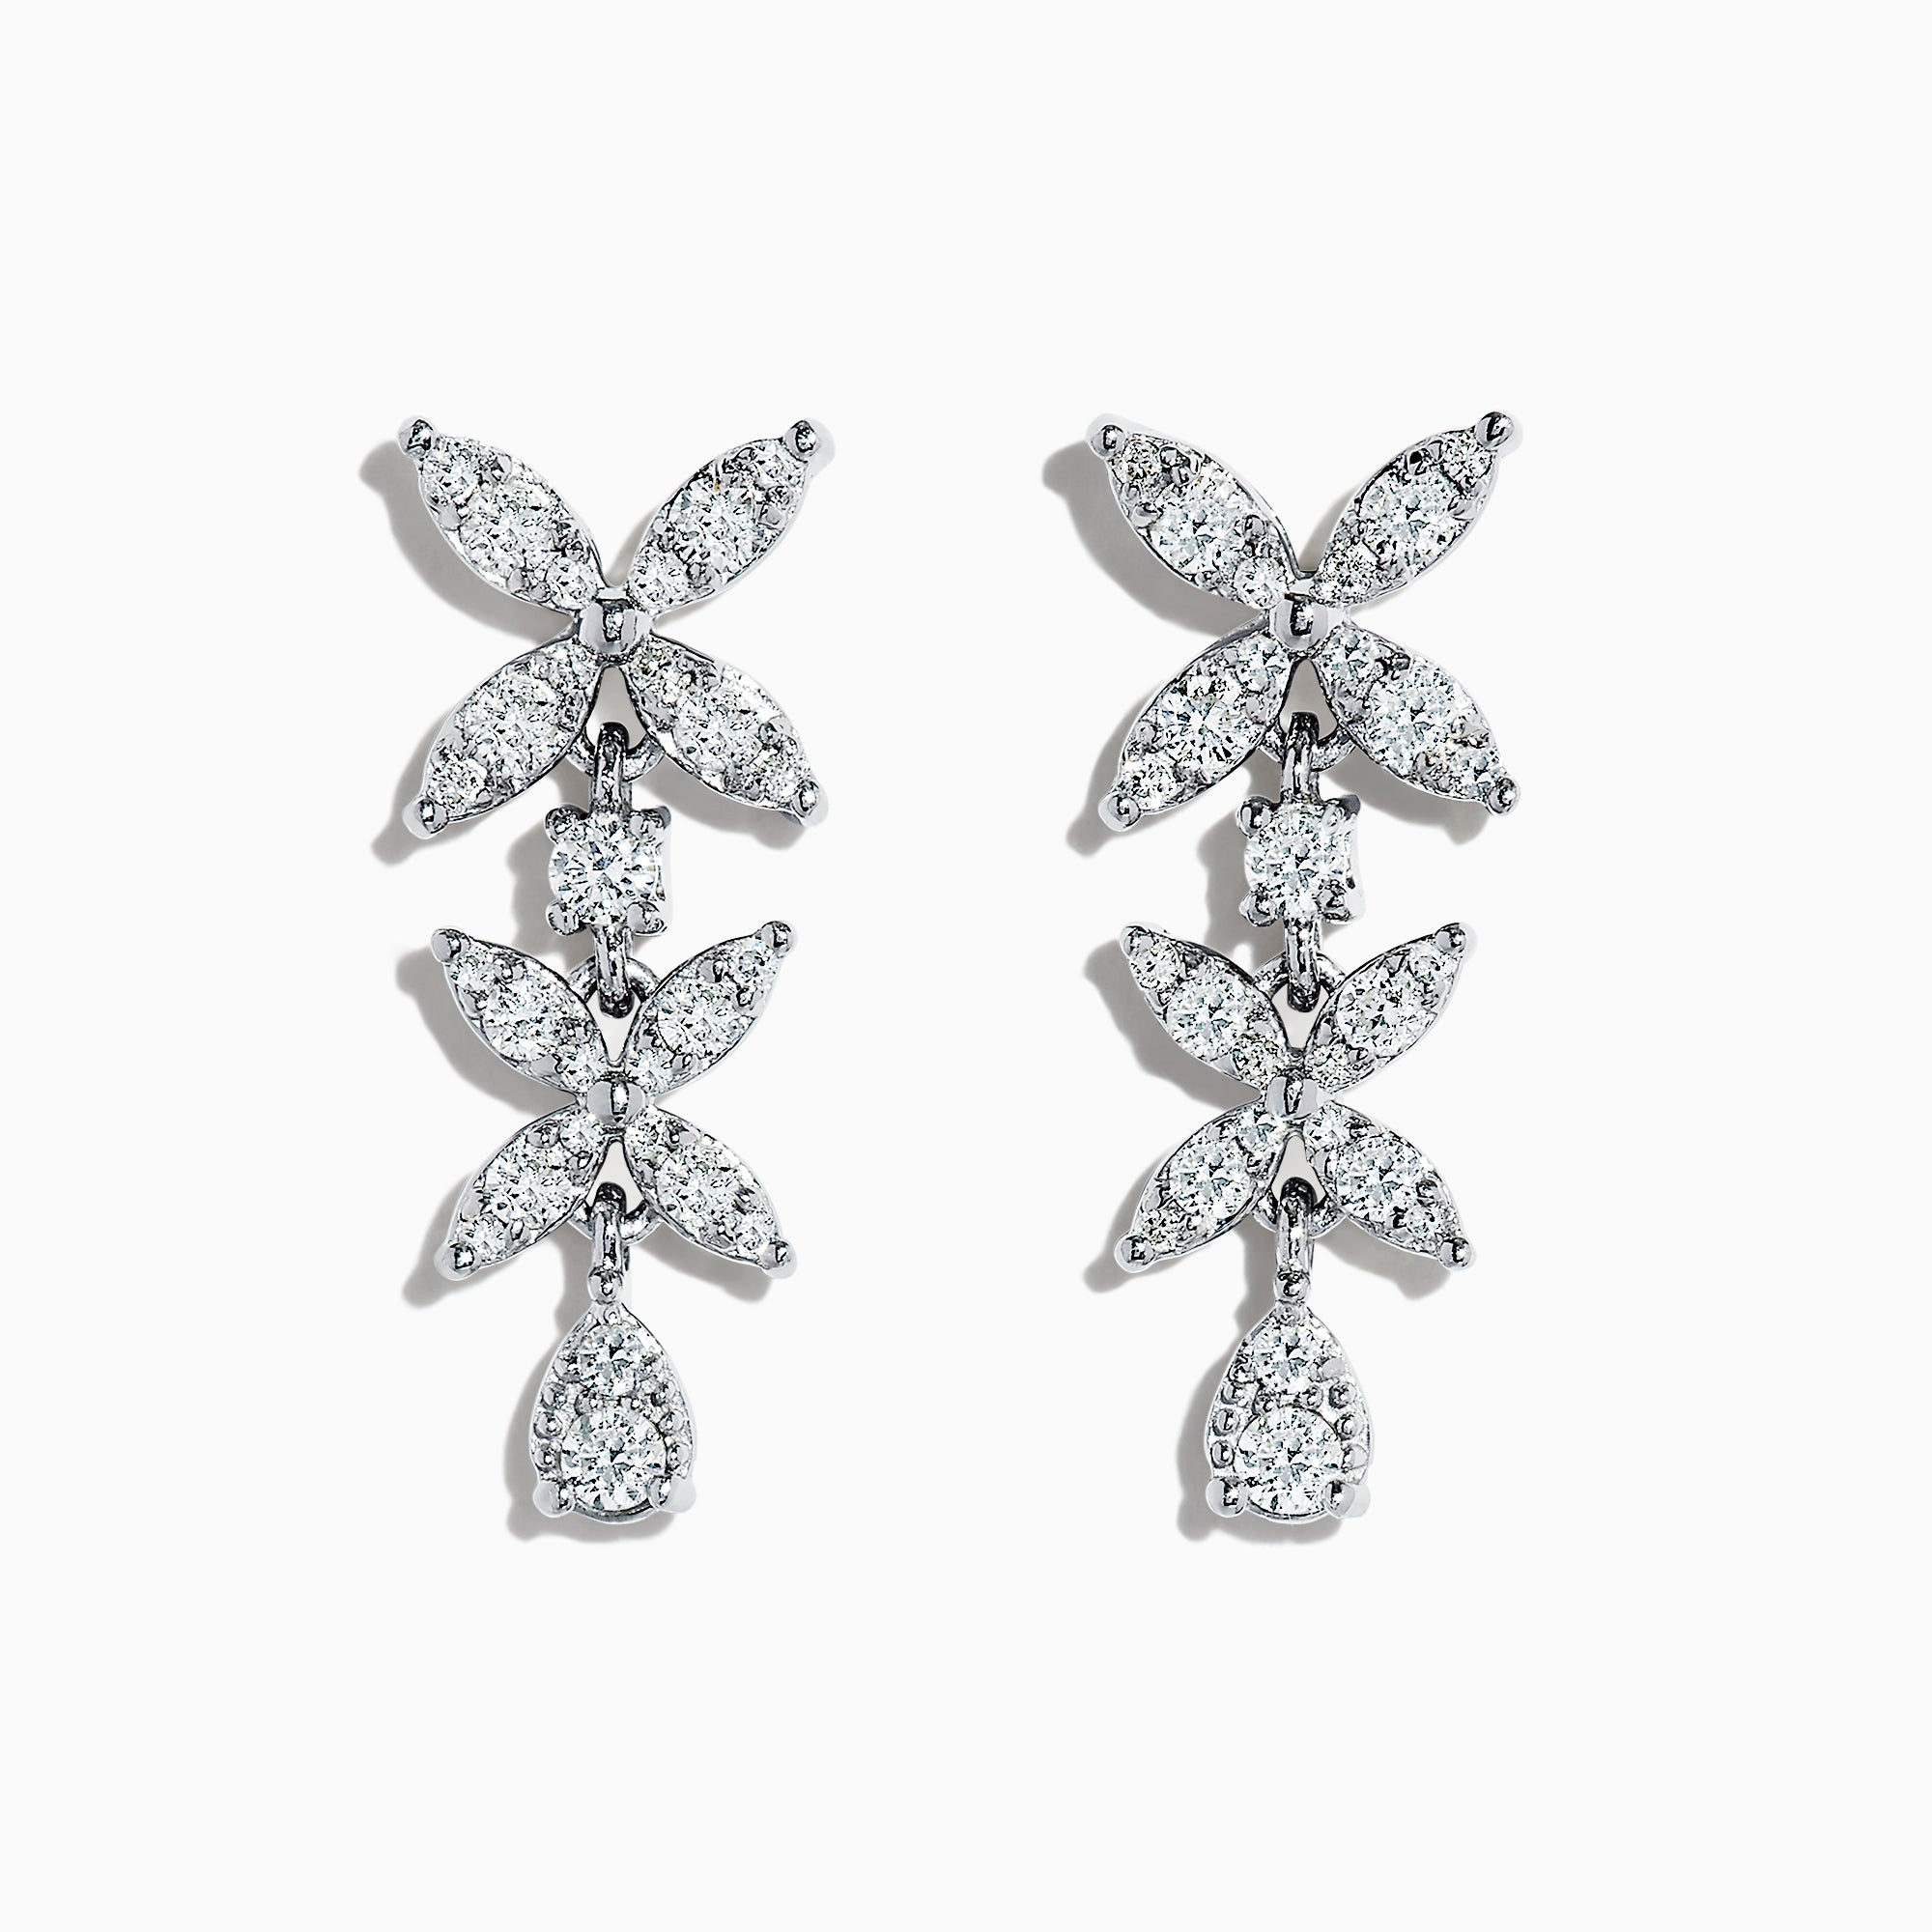 Effy Pave Classica 14K White Gold Diamond Earrings, 0.73 TCW